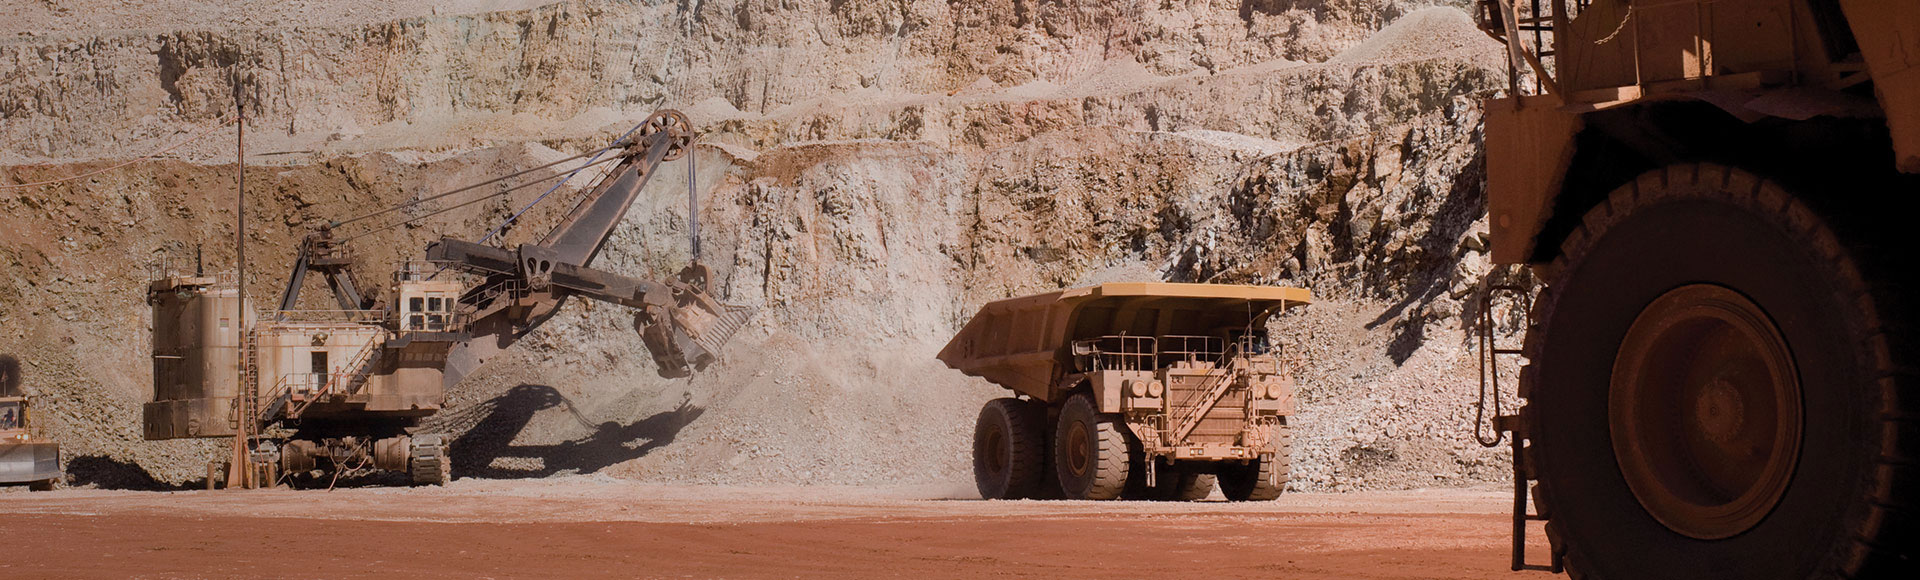 Gold Mine in Western Australia